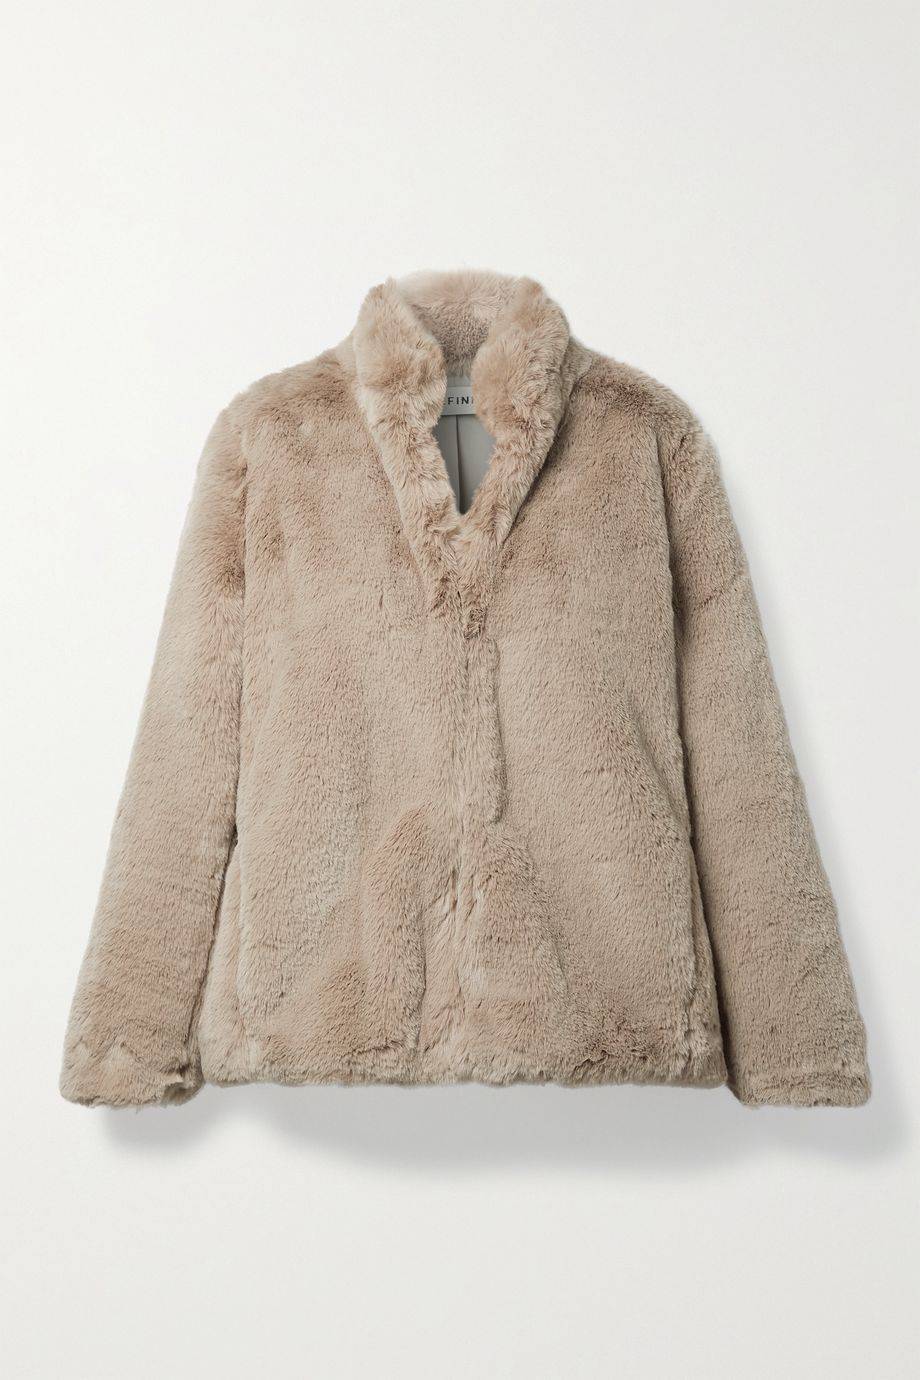 CEFINN Carly faux fur jacket